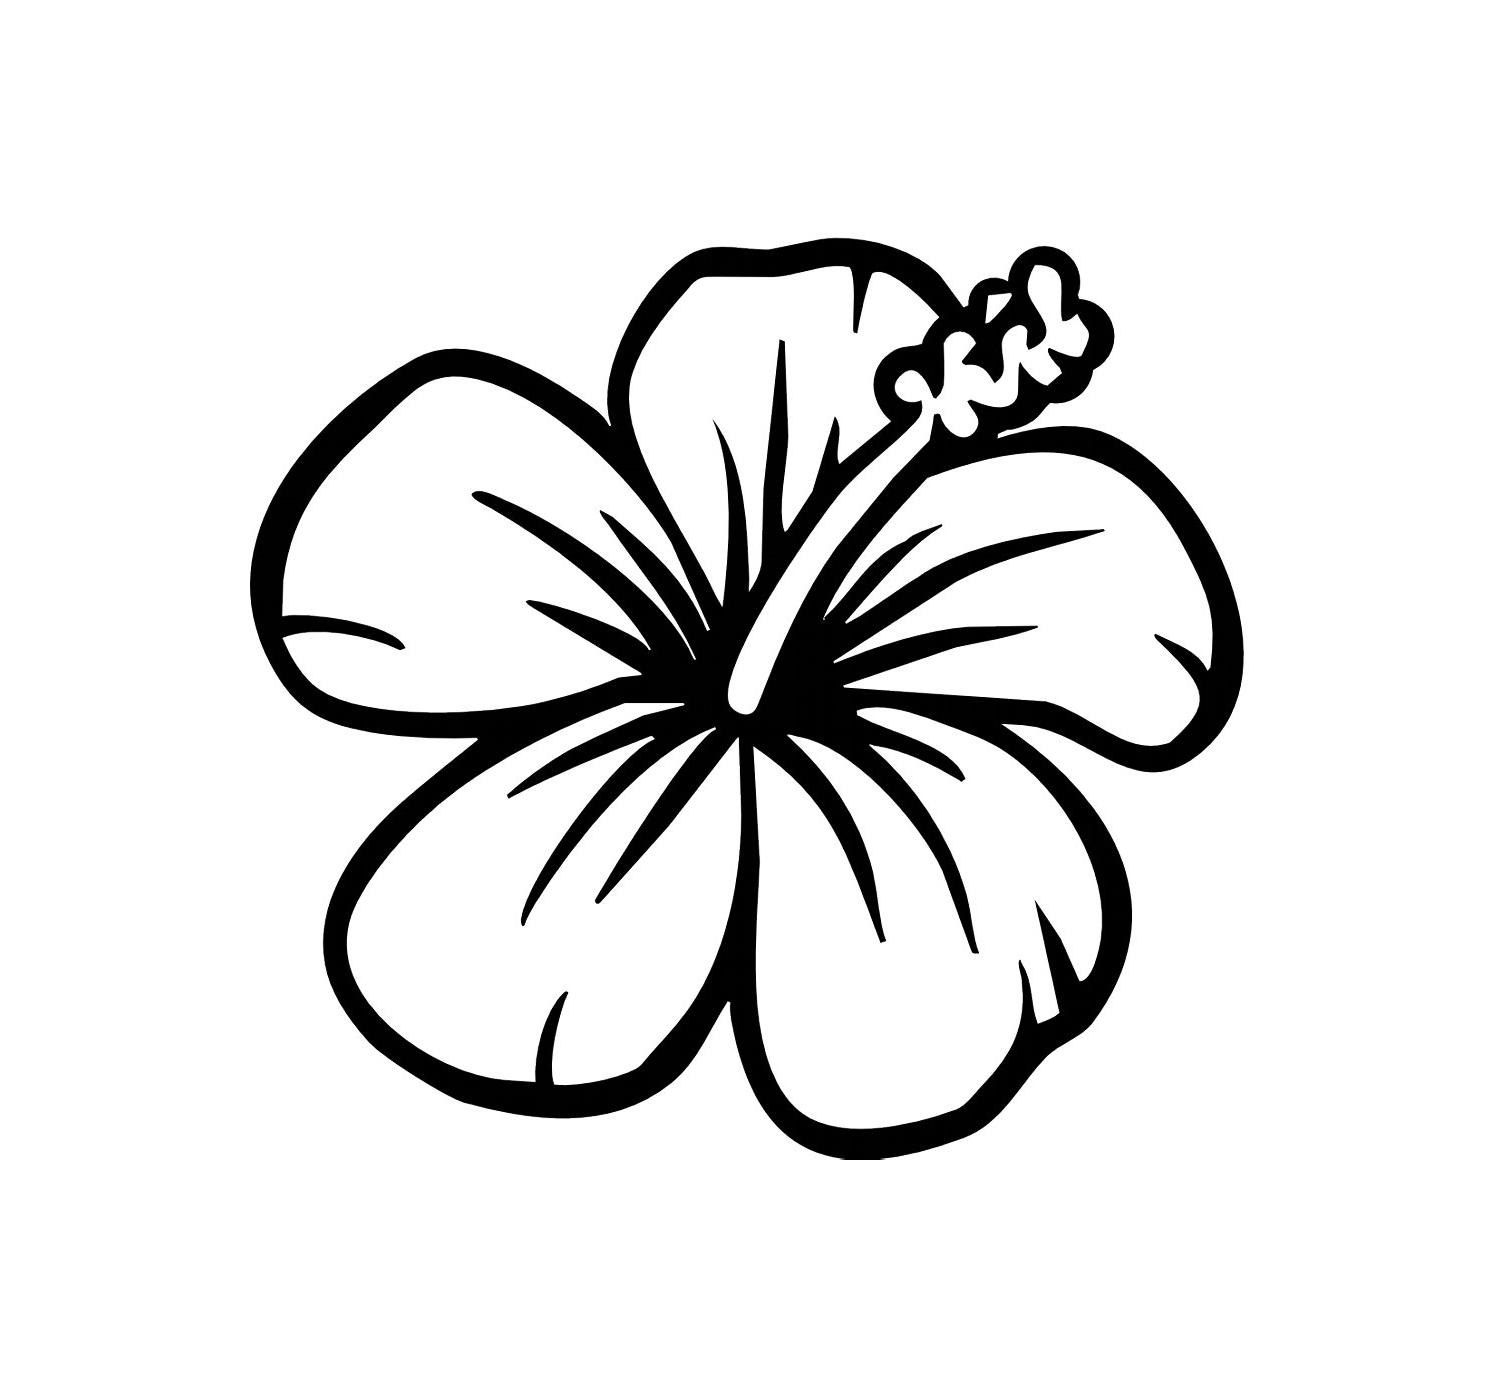 Hibiscus Flower Line Drawing : Hibiscus line drawing clipart best